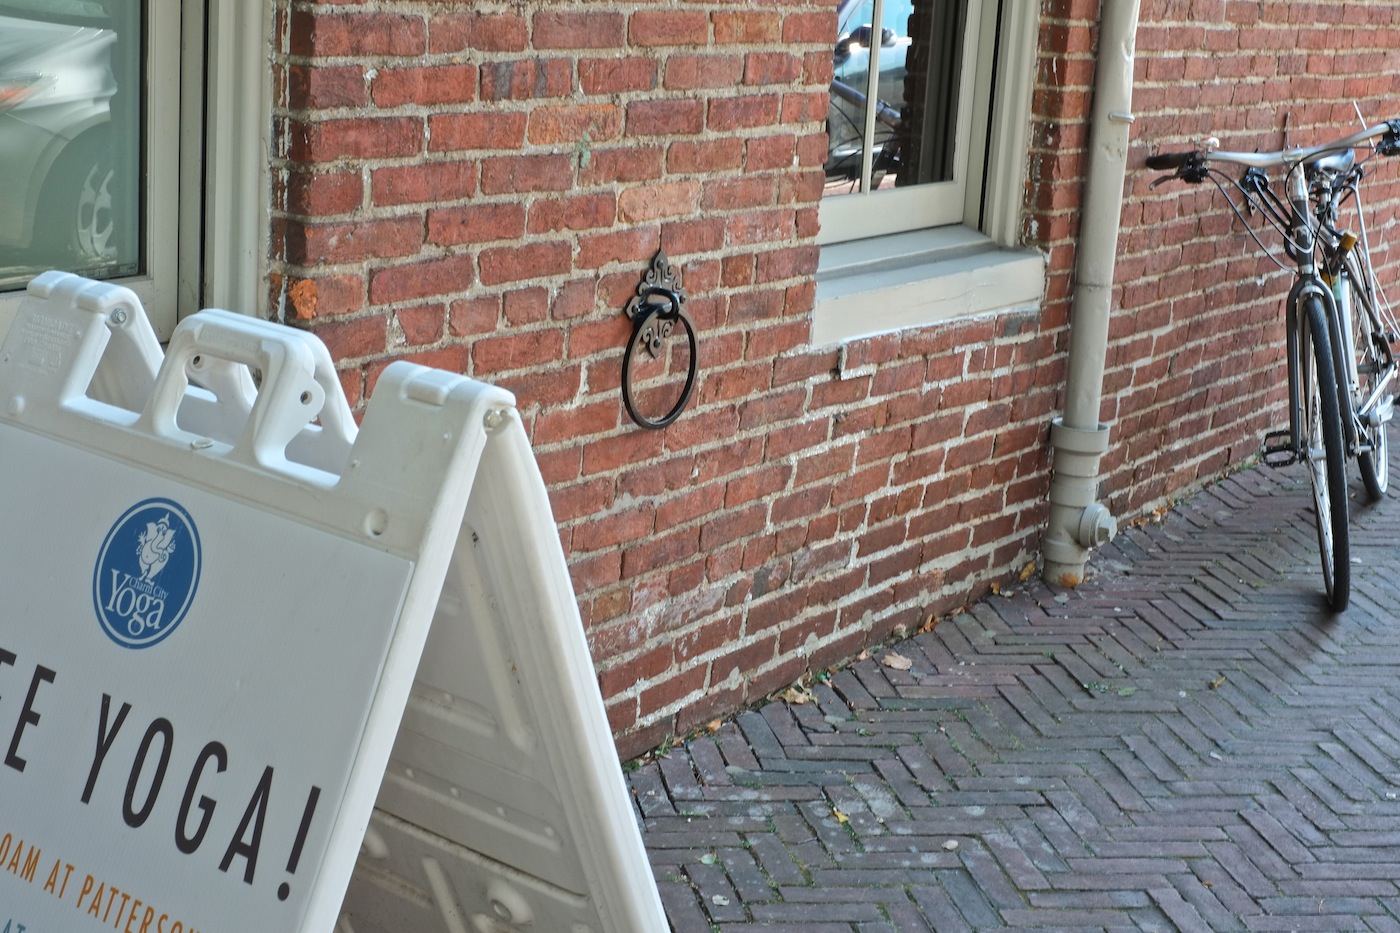 Bike locking station installed in Fells Point at Charm City Yoga.